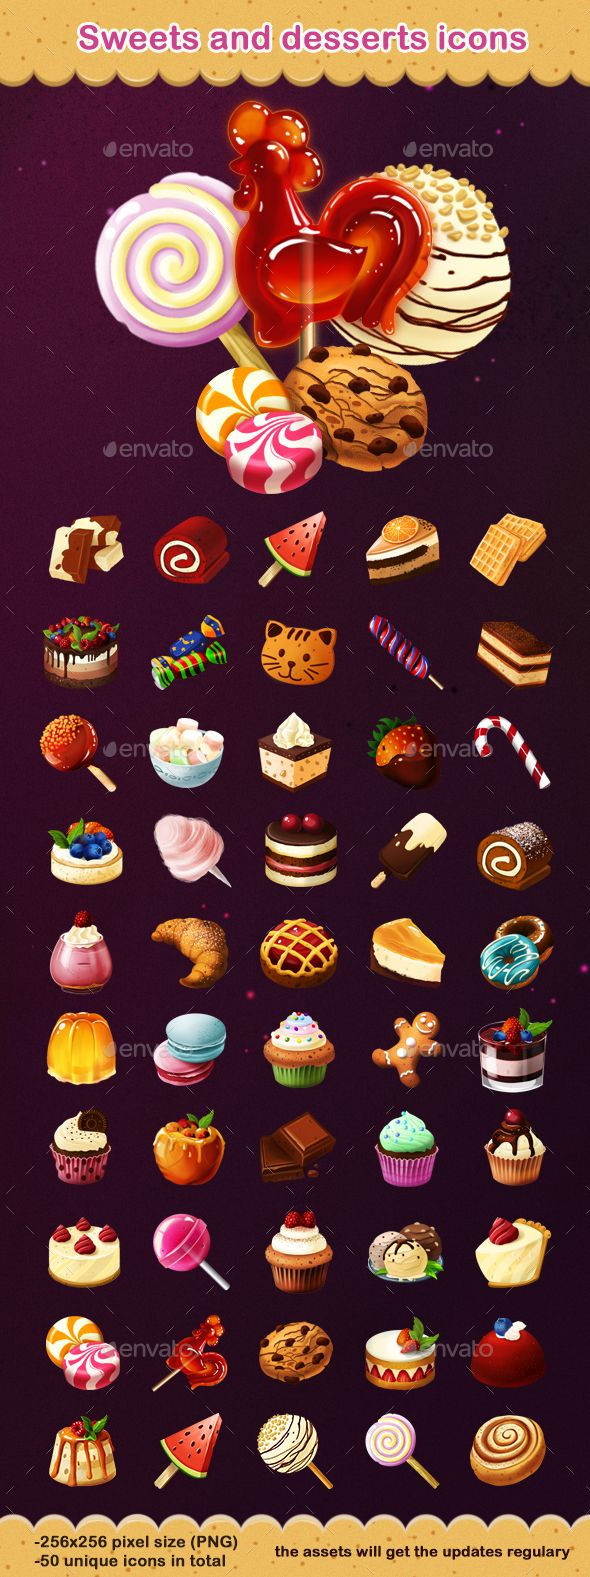 Sweets and Desserts Icons Download link: https://graphicriver.net/item/sweets-and-desserts-icons/19875199?ref=klitz